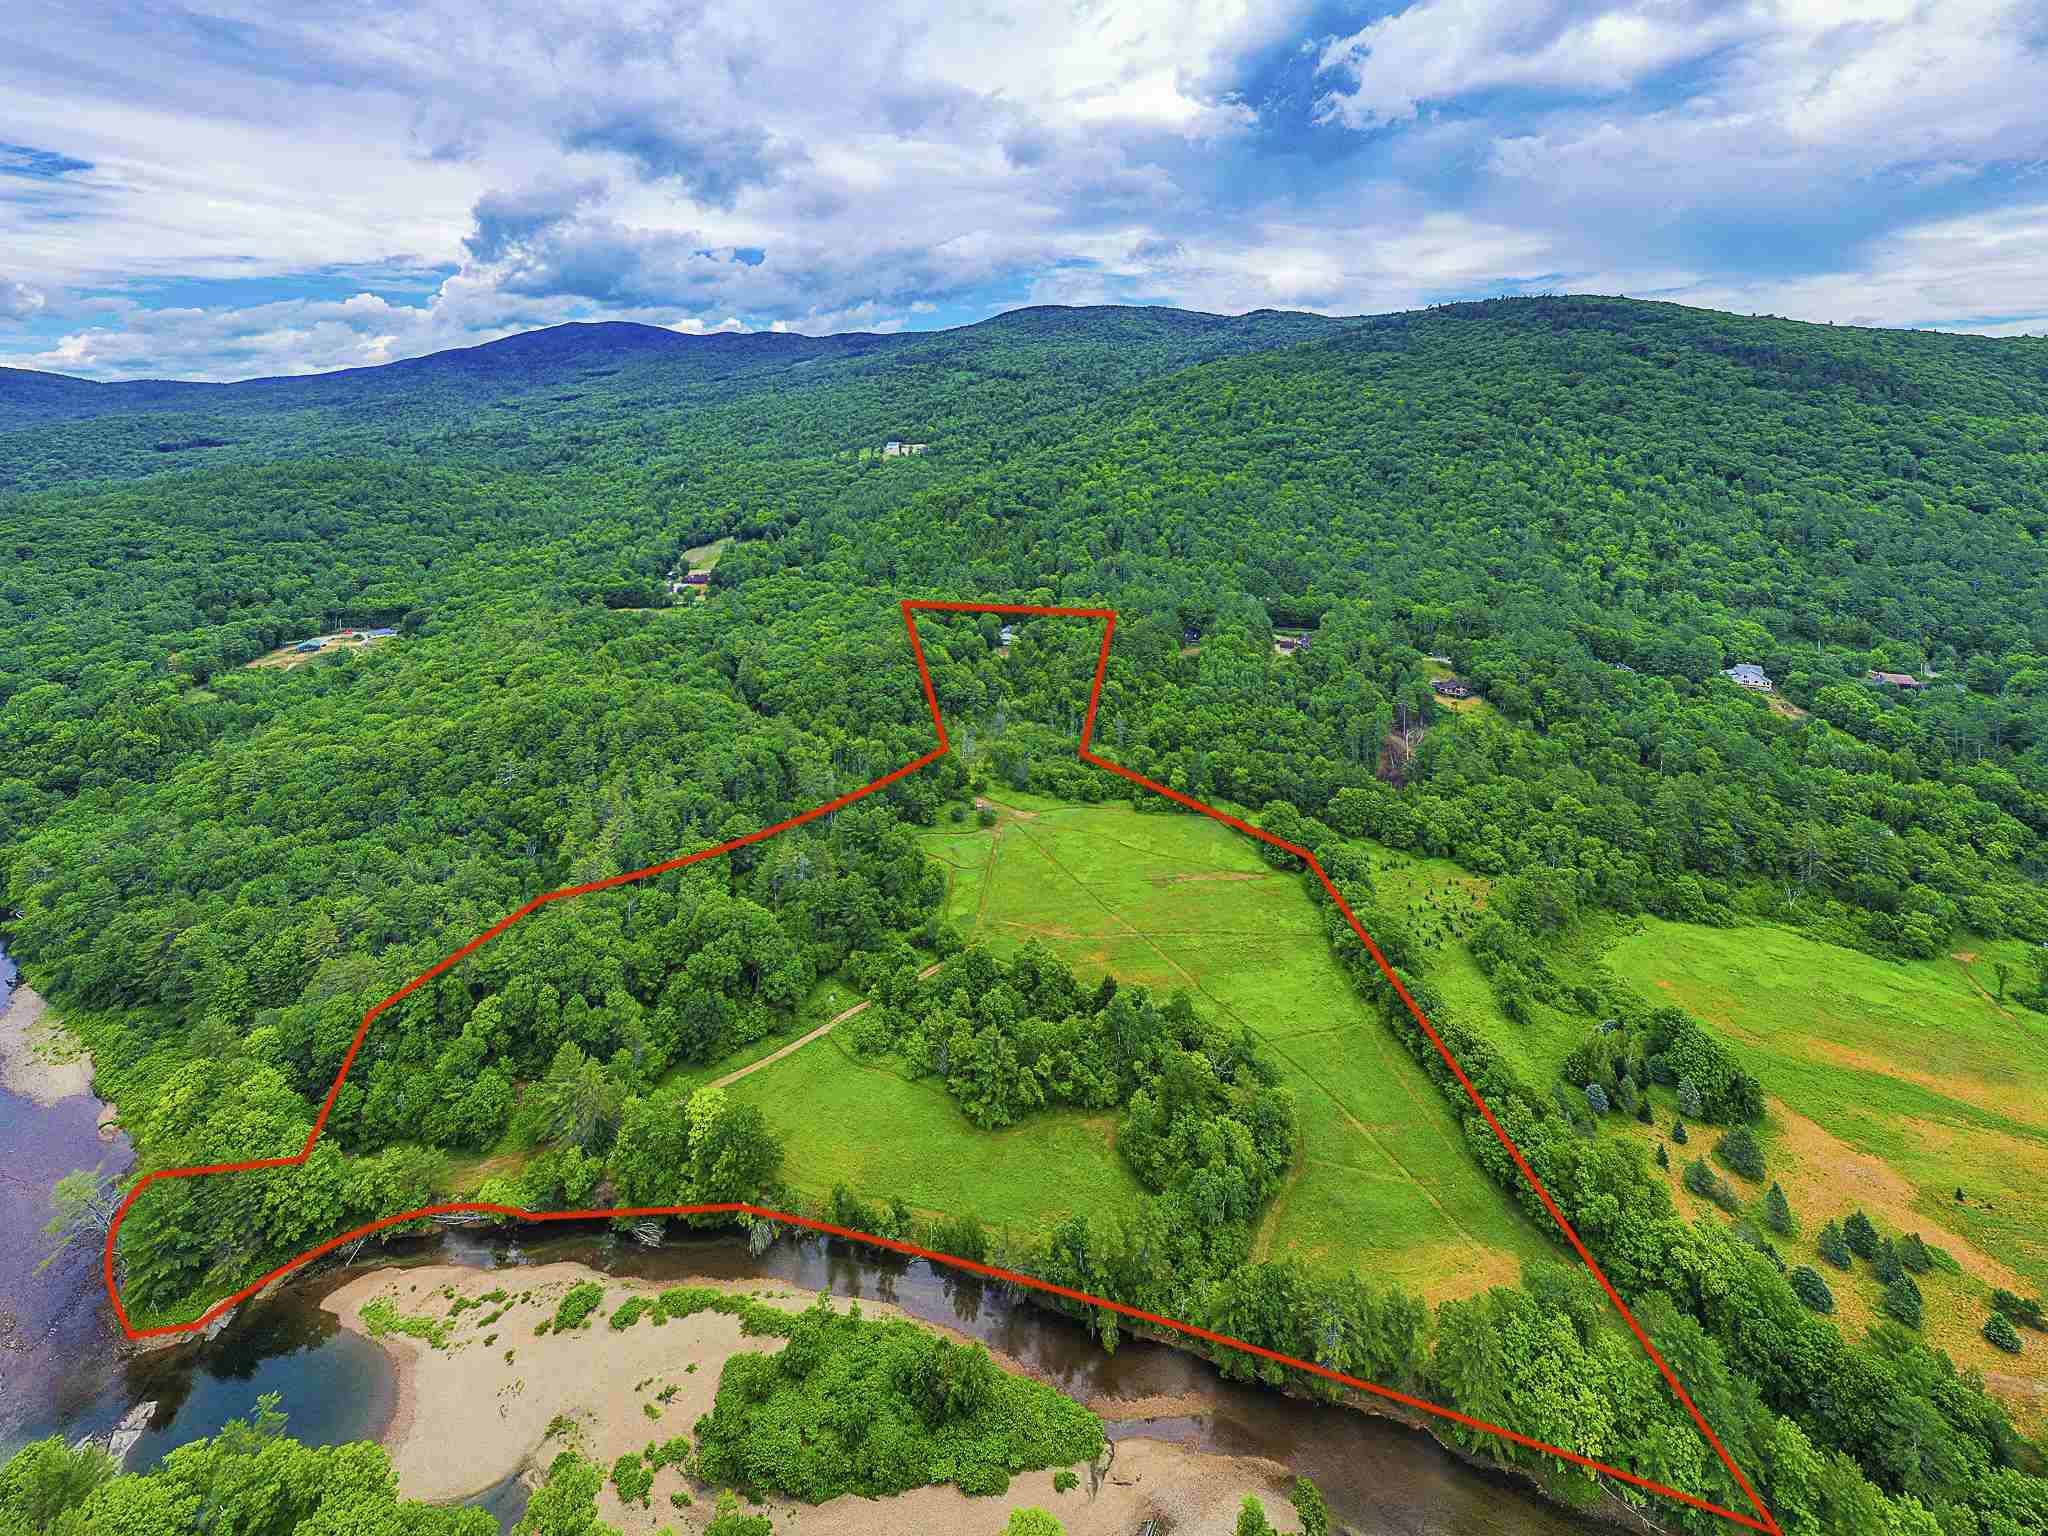 MLS 4774233: 2425 Buffalo Road, Rumney NH